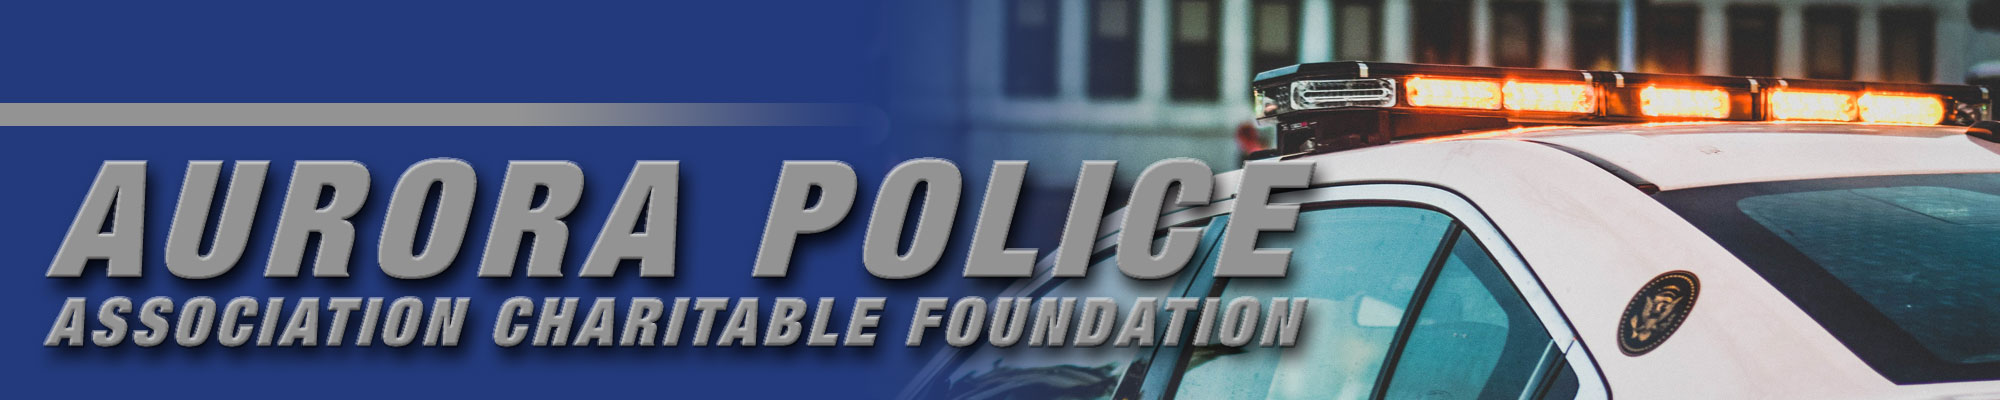 Aurora Police Association Charitable Foundation